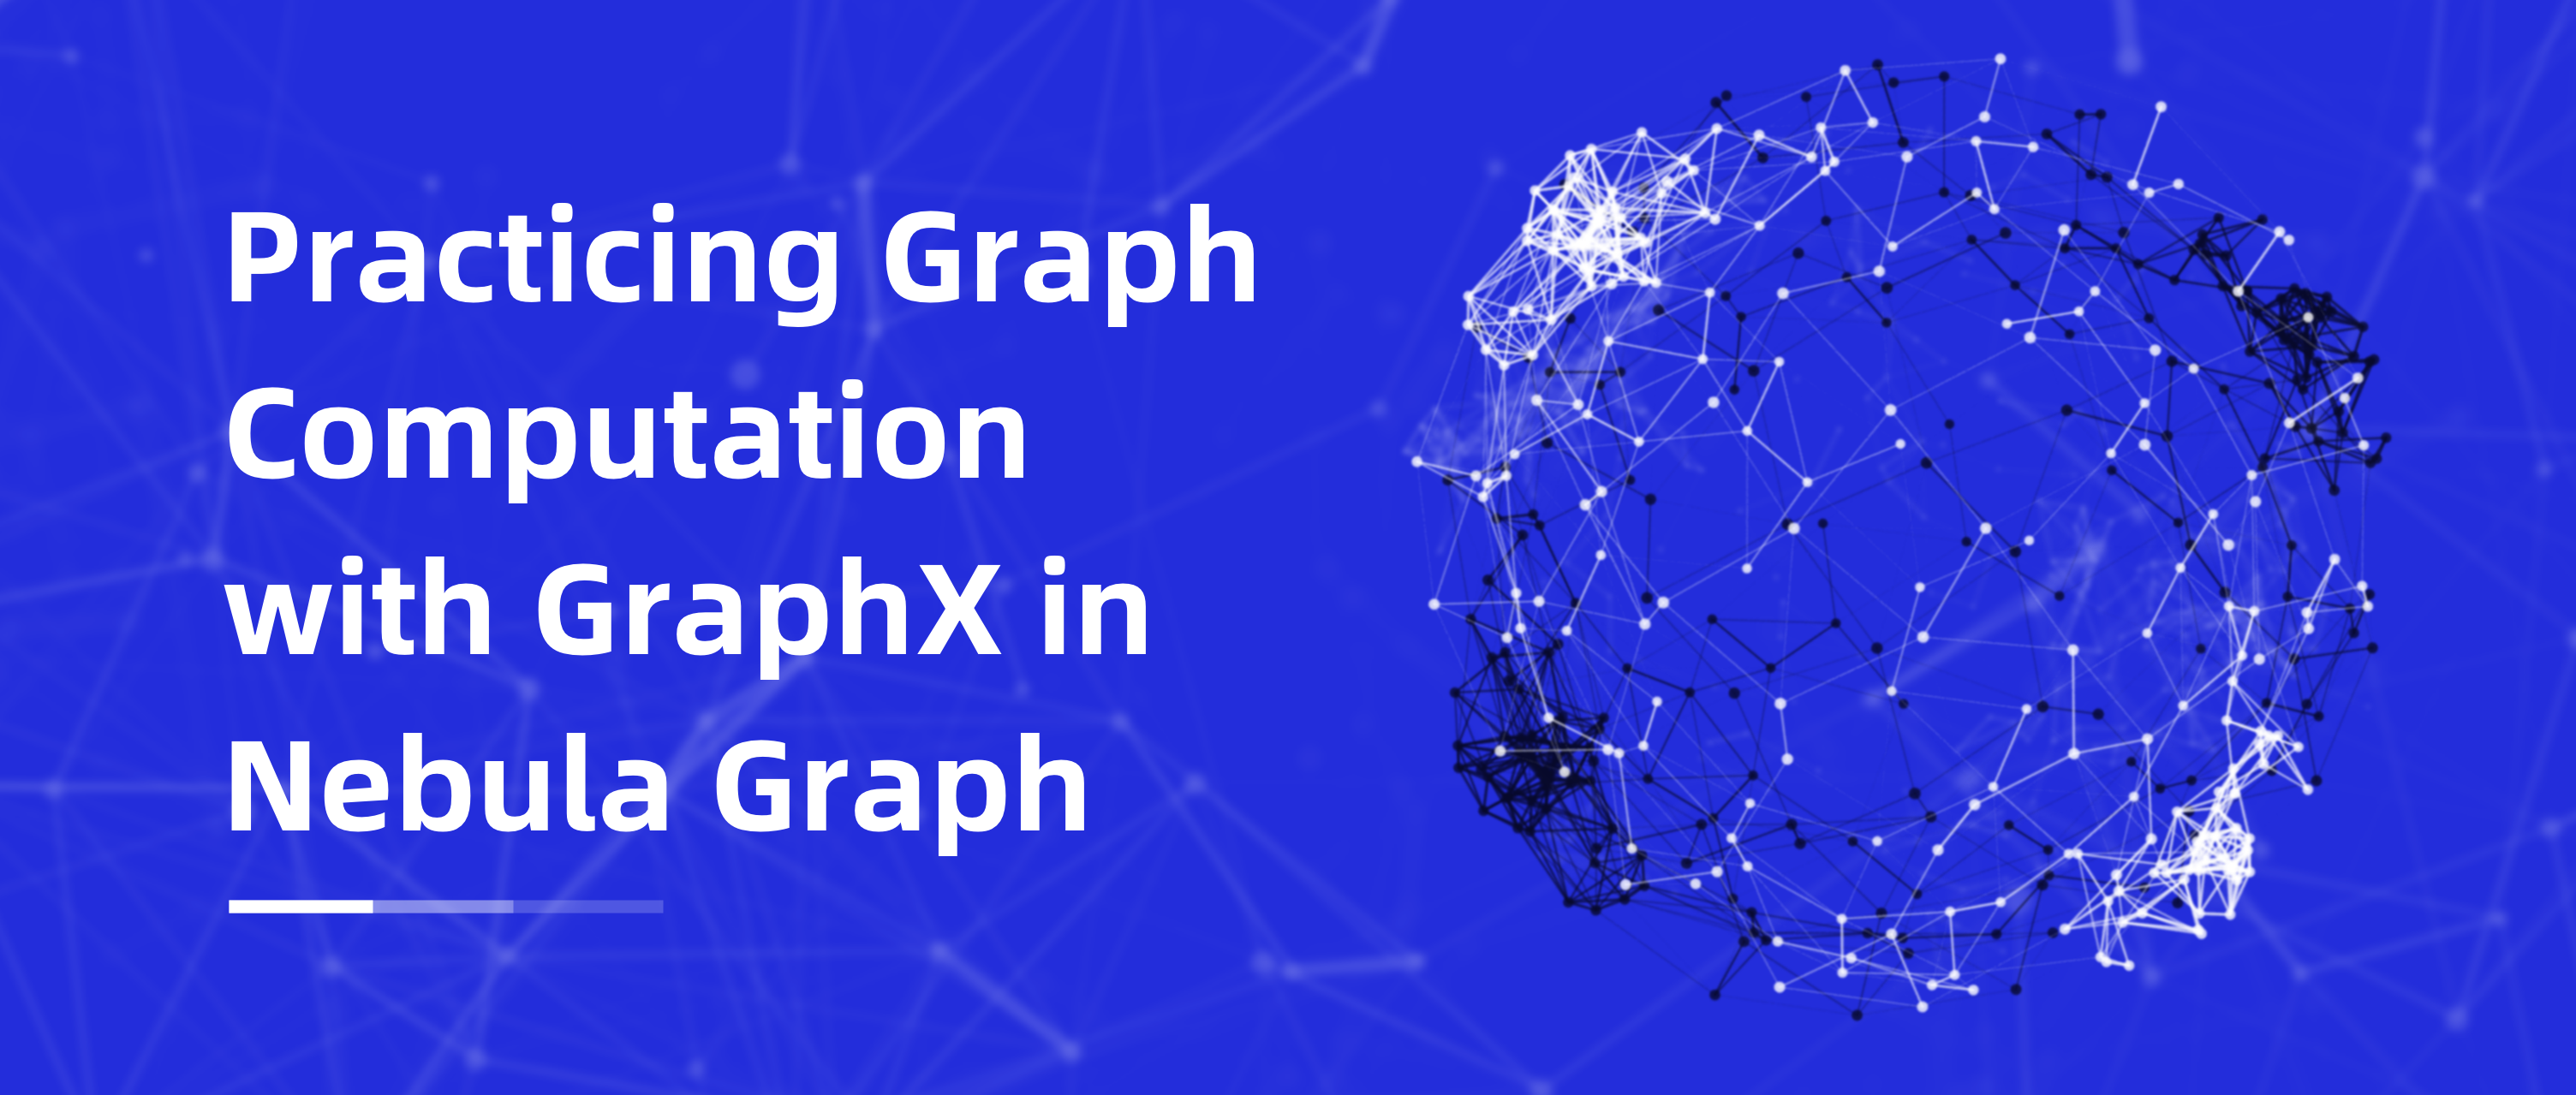 Practicing Graph Computation with GraphX in Nebula Graph